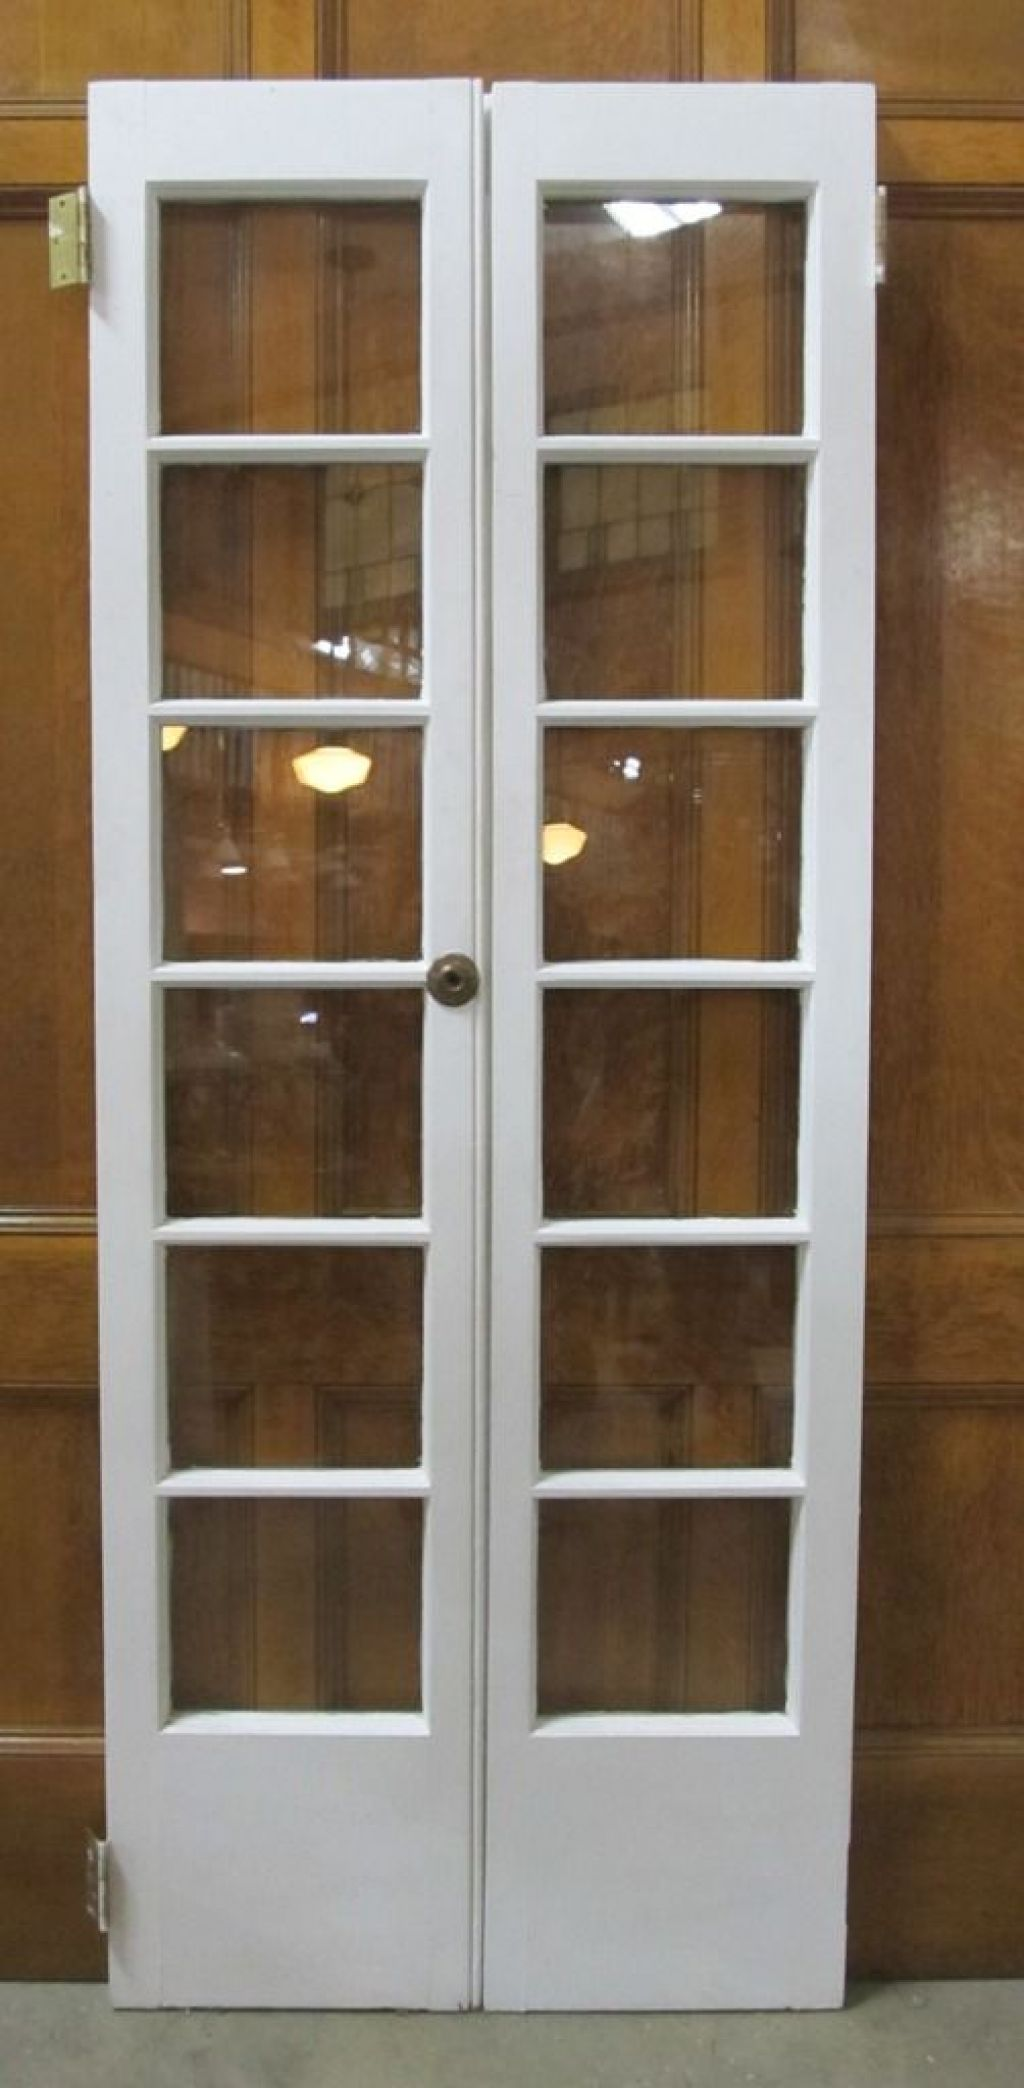 rosco french doors interior photo - 3